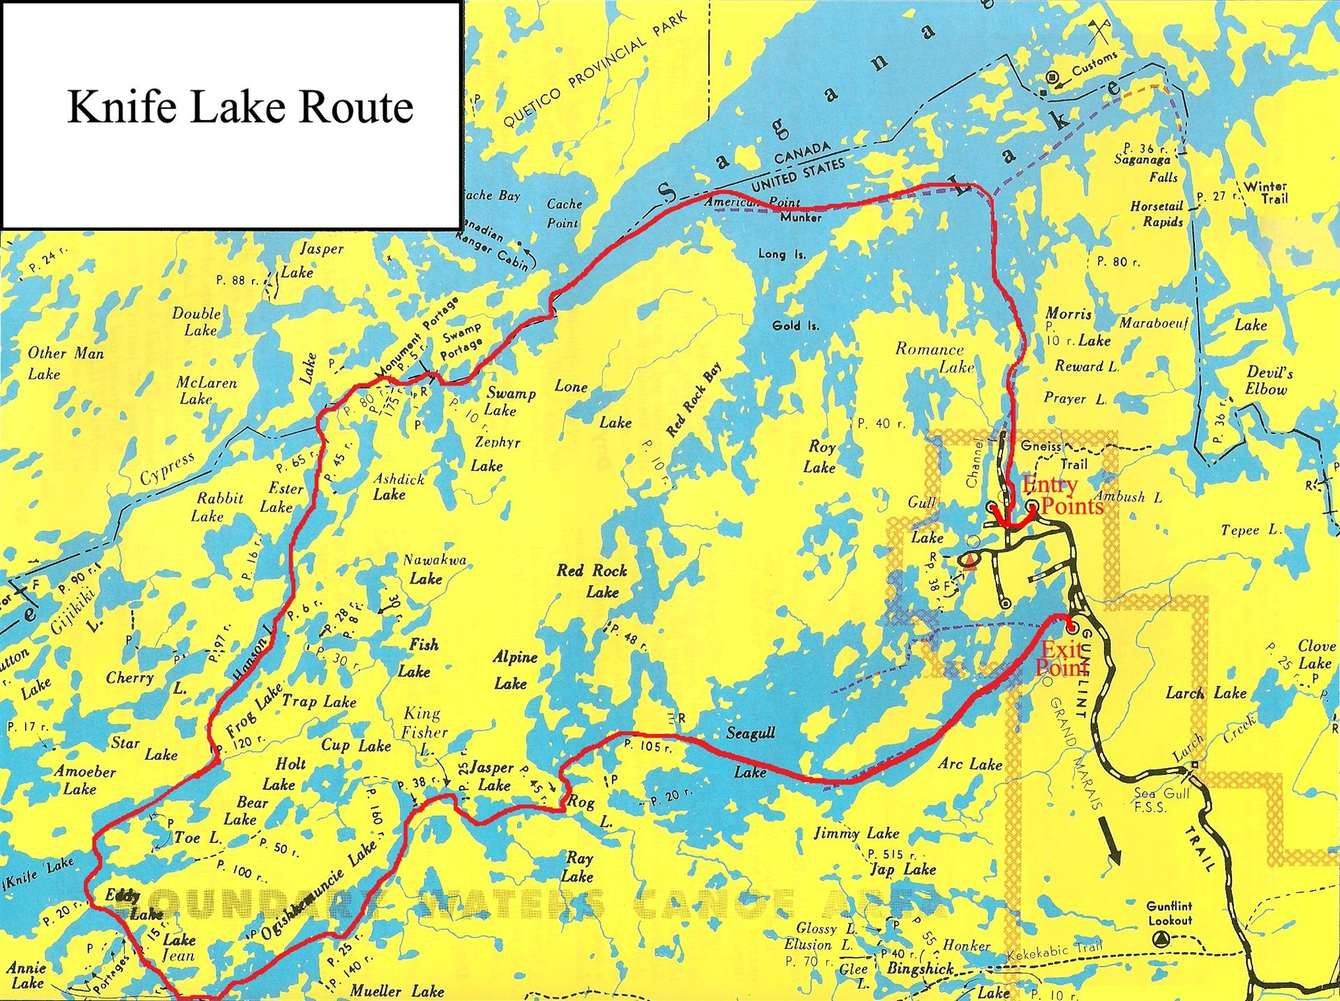 Knife Lake Route Clearwater Historic Lodge - Bwca entry point map